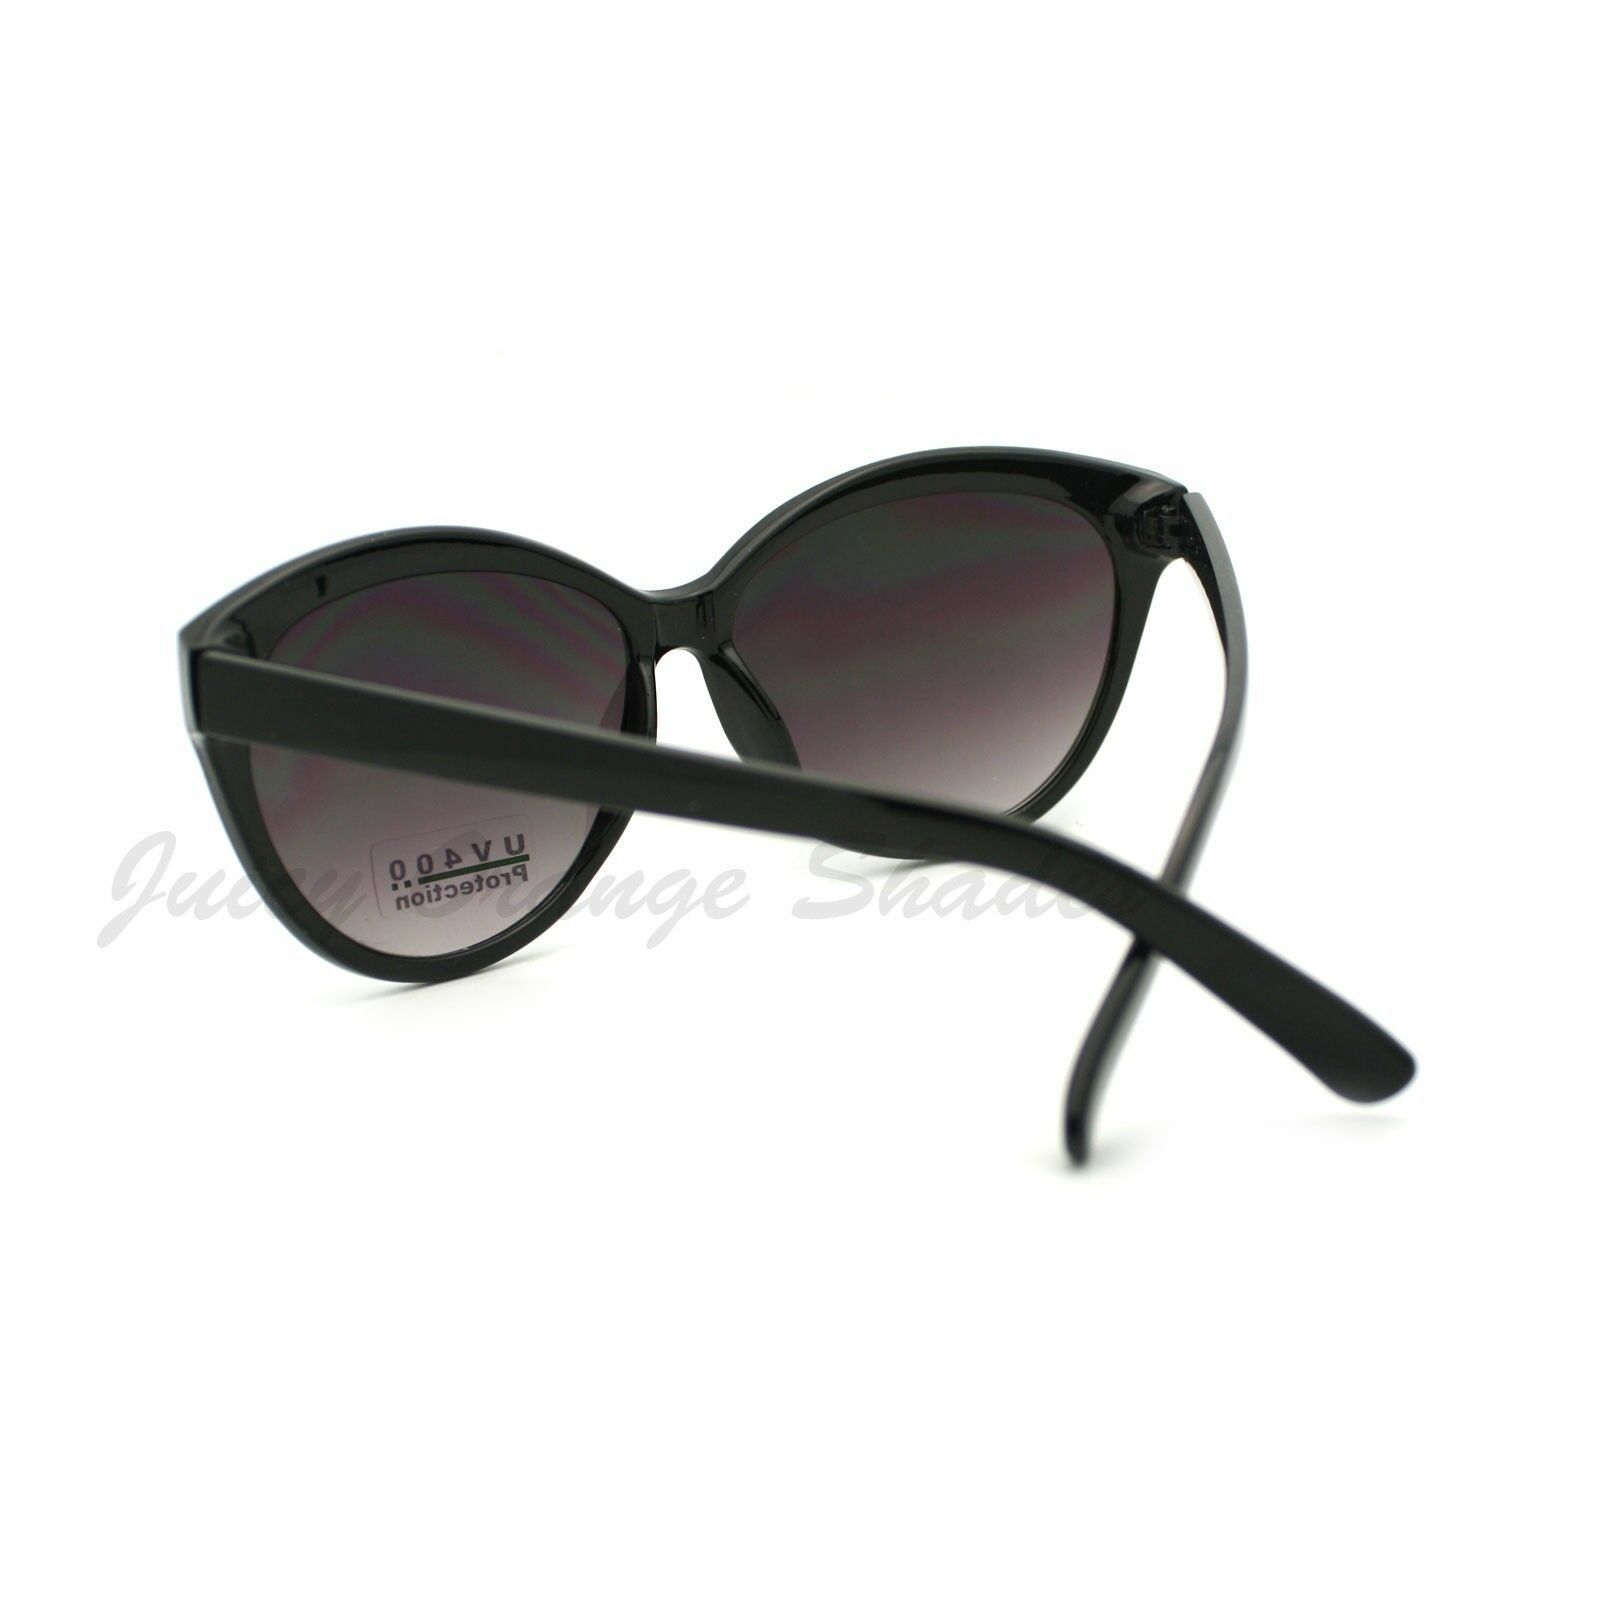 Women's Round Cateye Sunglasses Classic Casual Fashion Shades